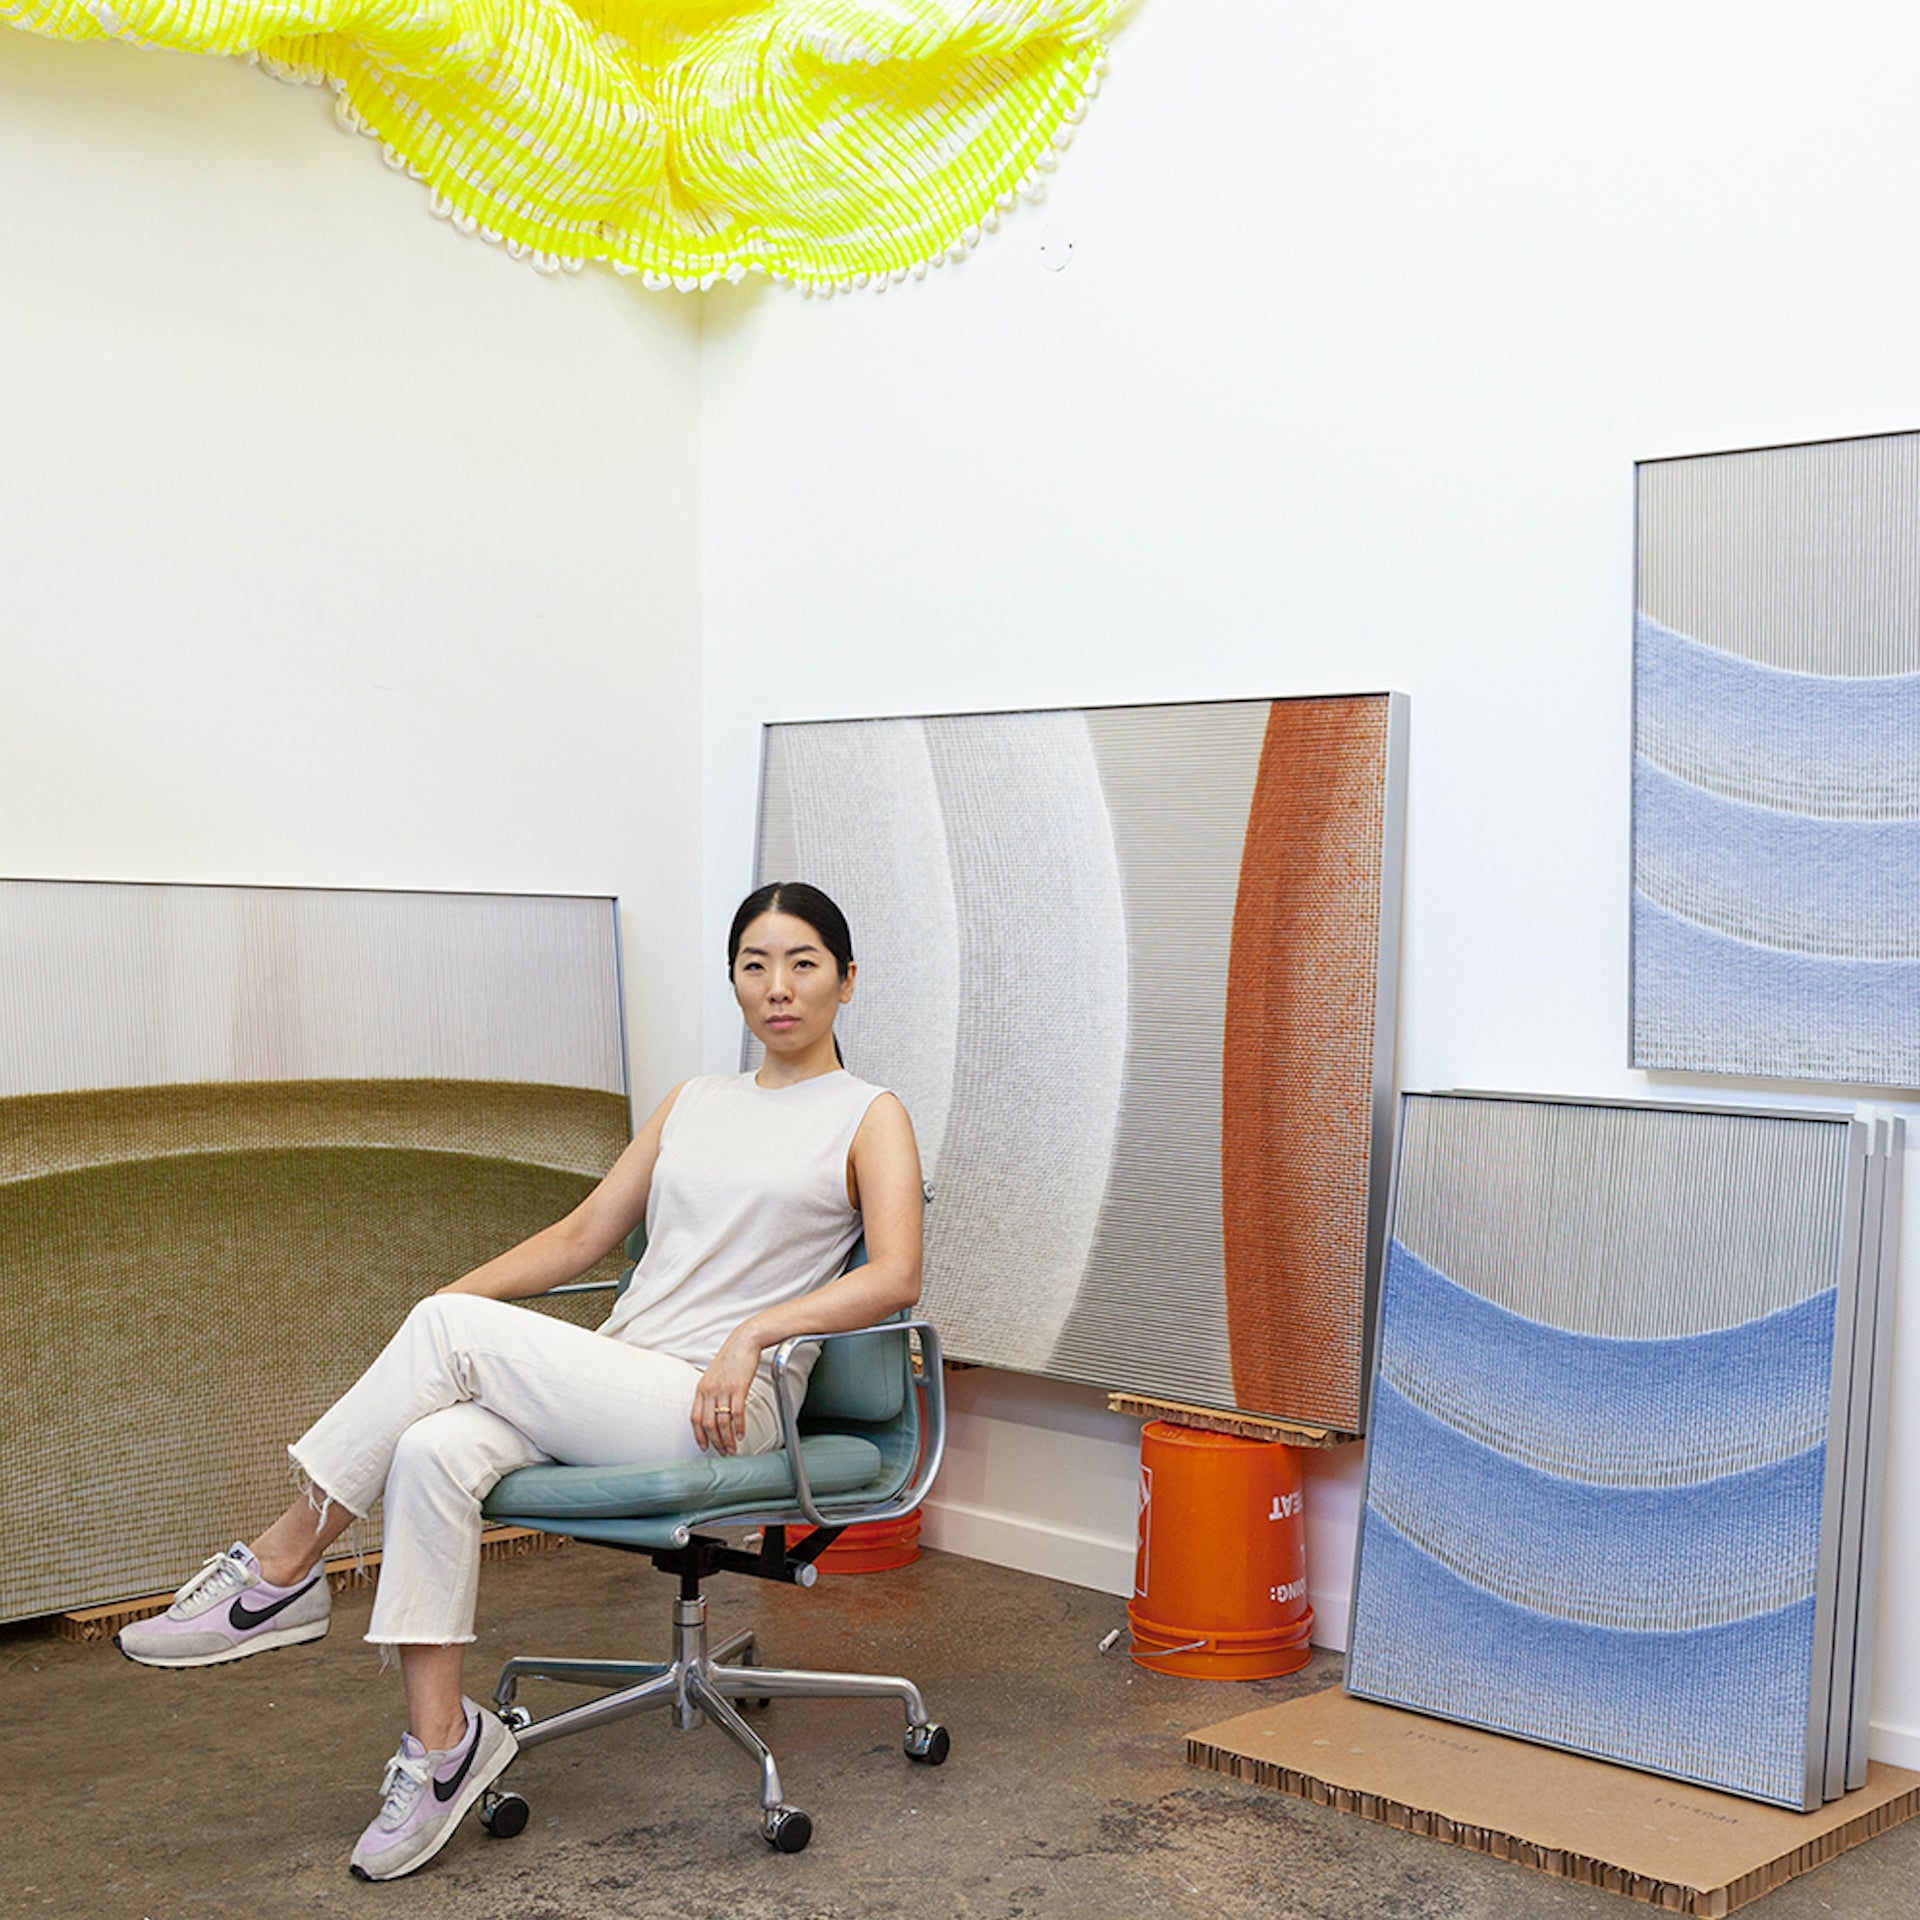 The artist with pieces from her Falling Fence and Subsuming Ellipse series. Photo © Mimi Jung